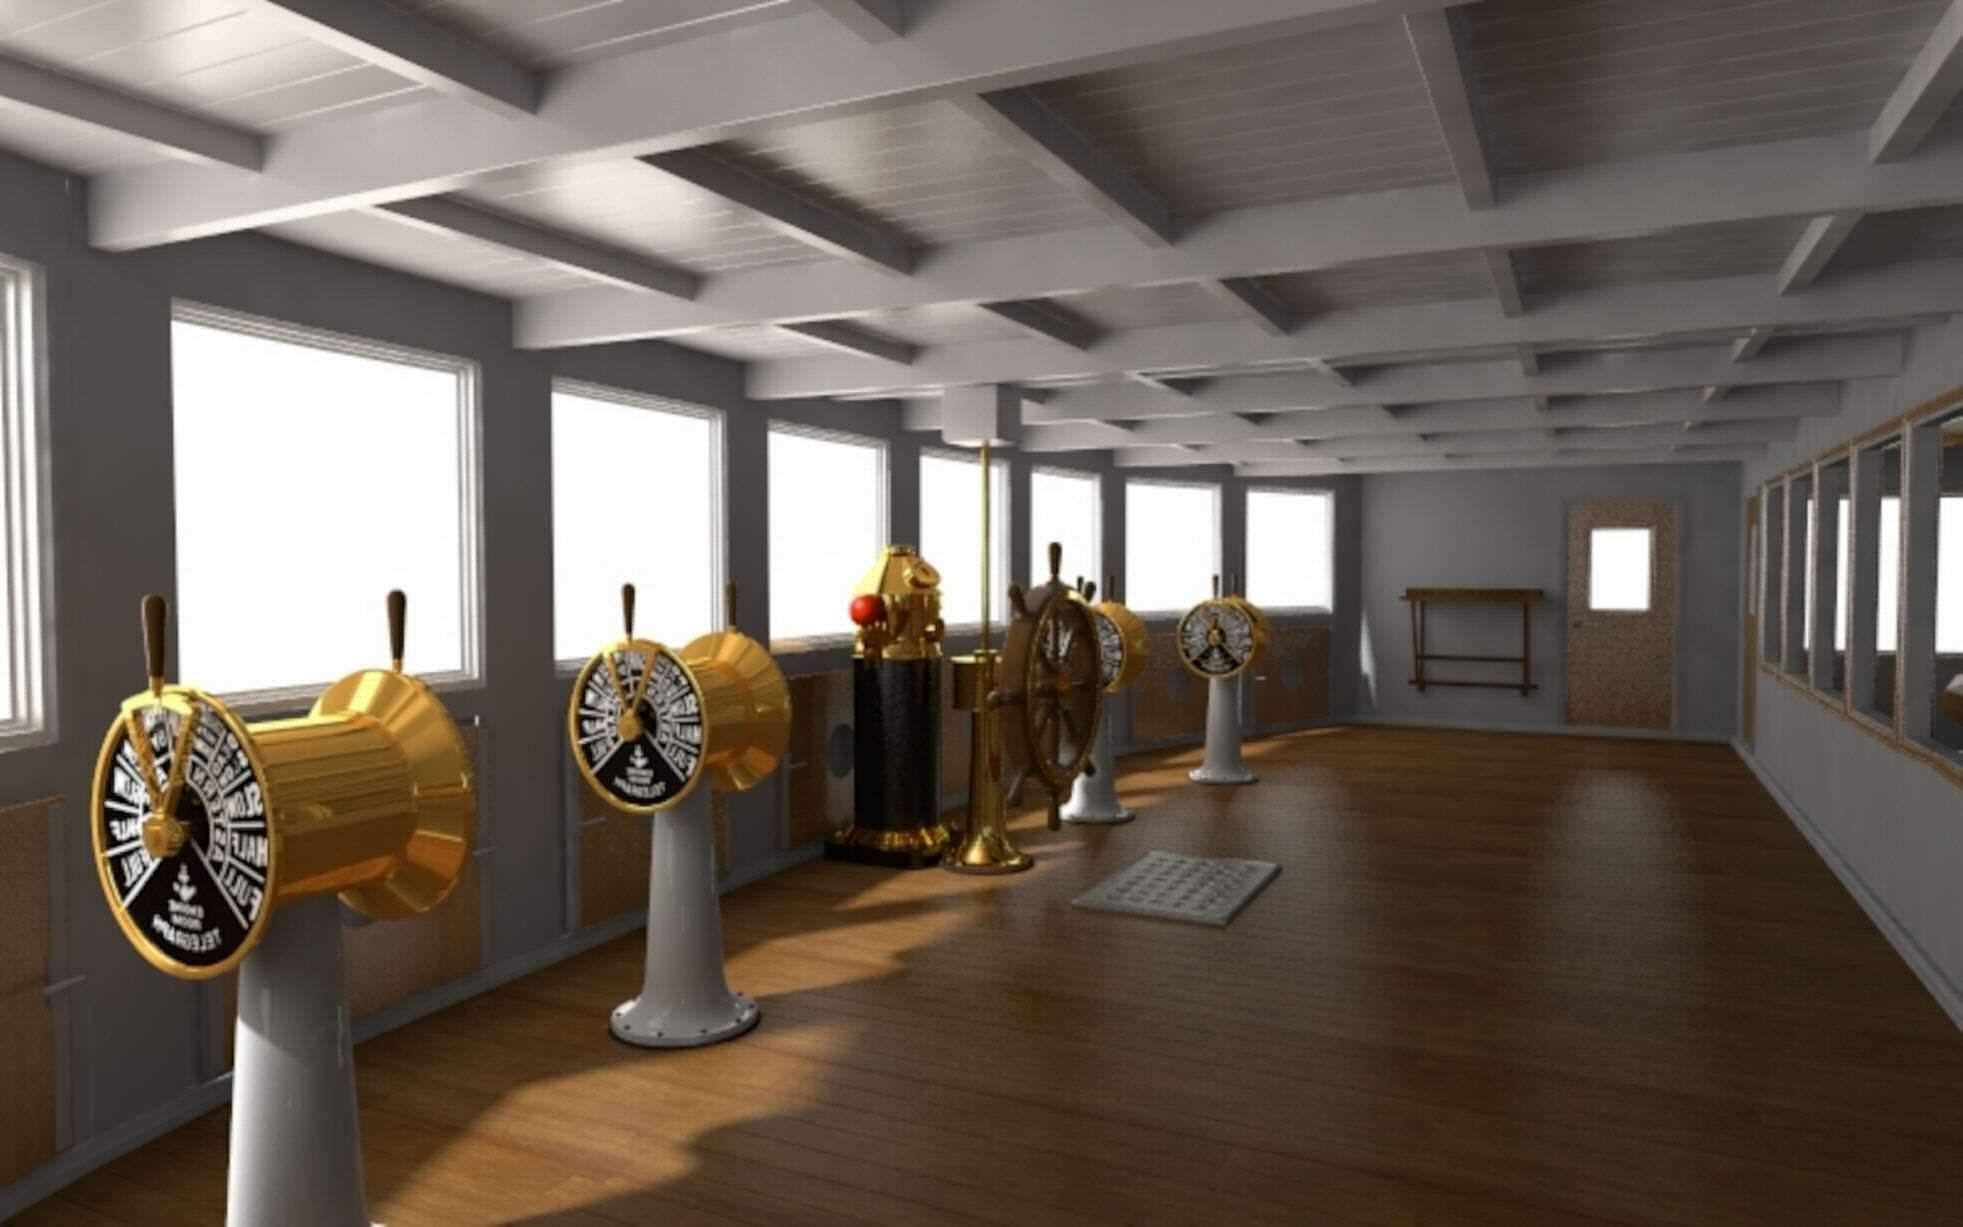 Incredible New Photos Give First Look Inside Titanic 2 titanic new 4